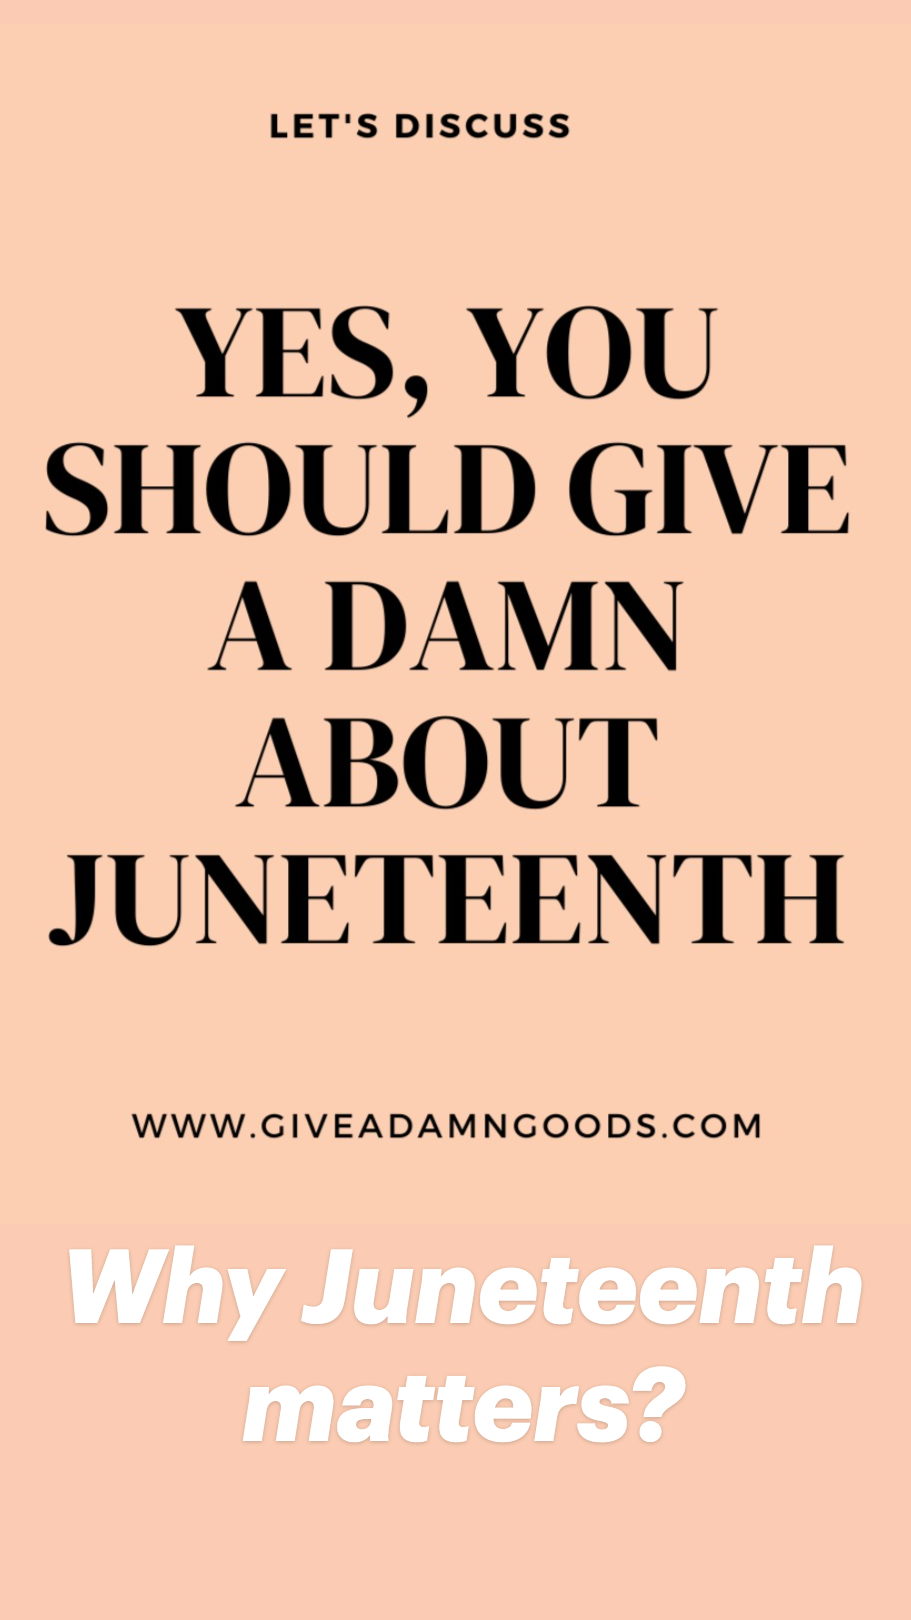 Why Juneteenth matters?